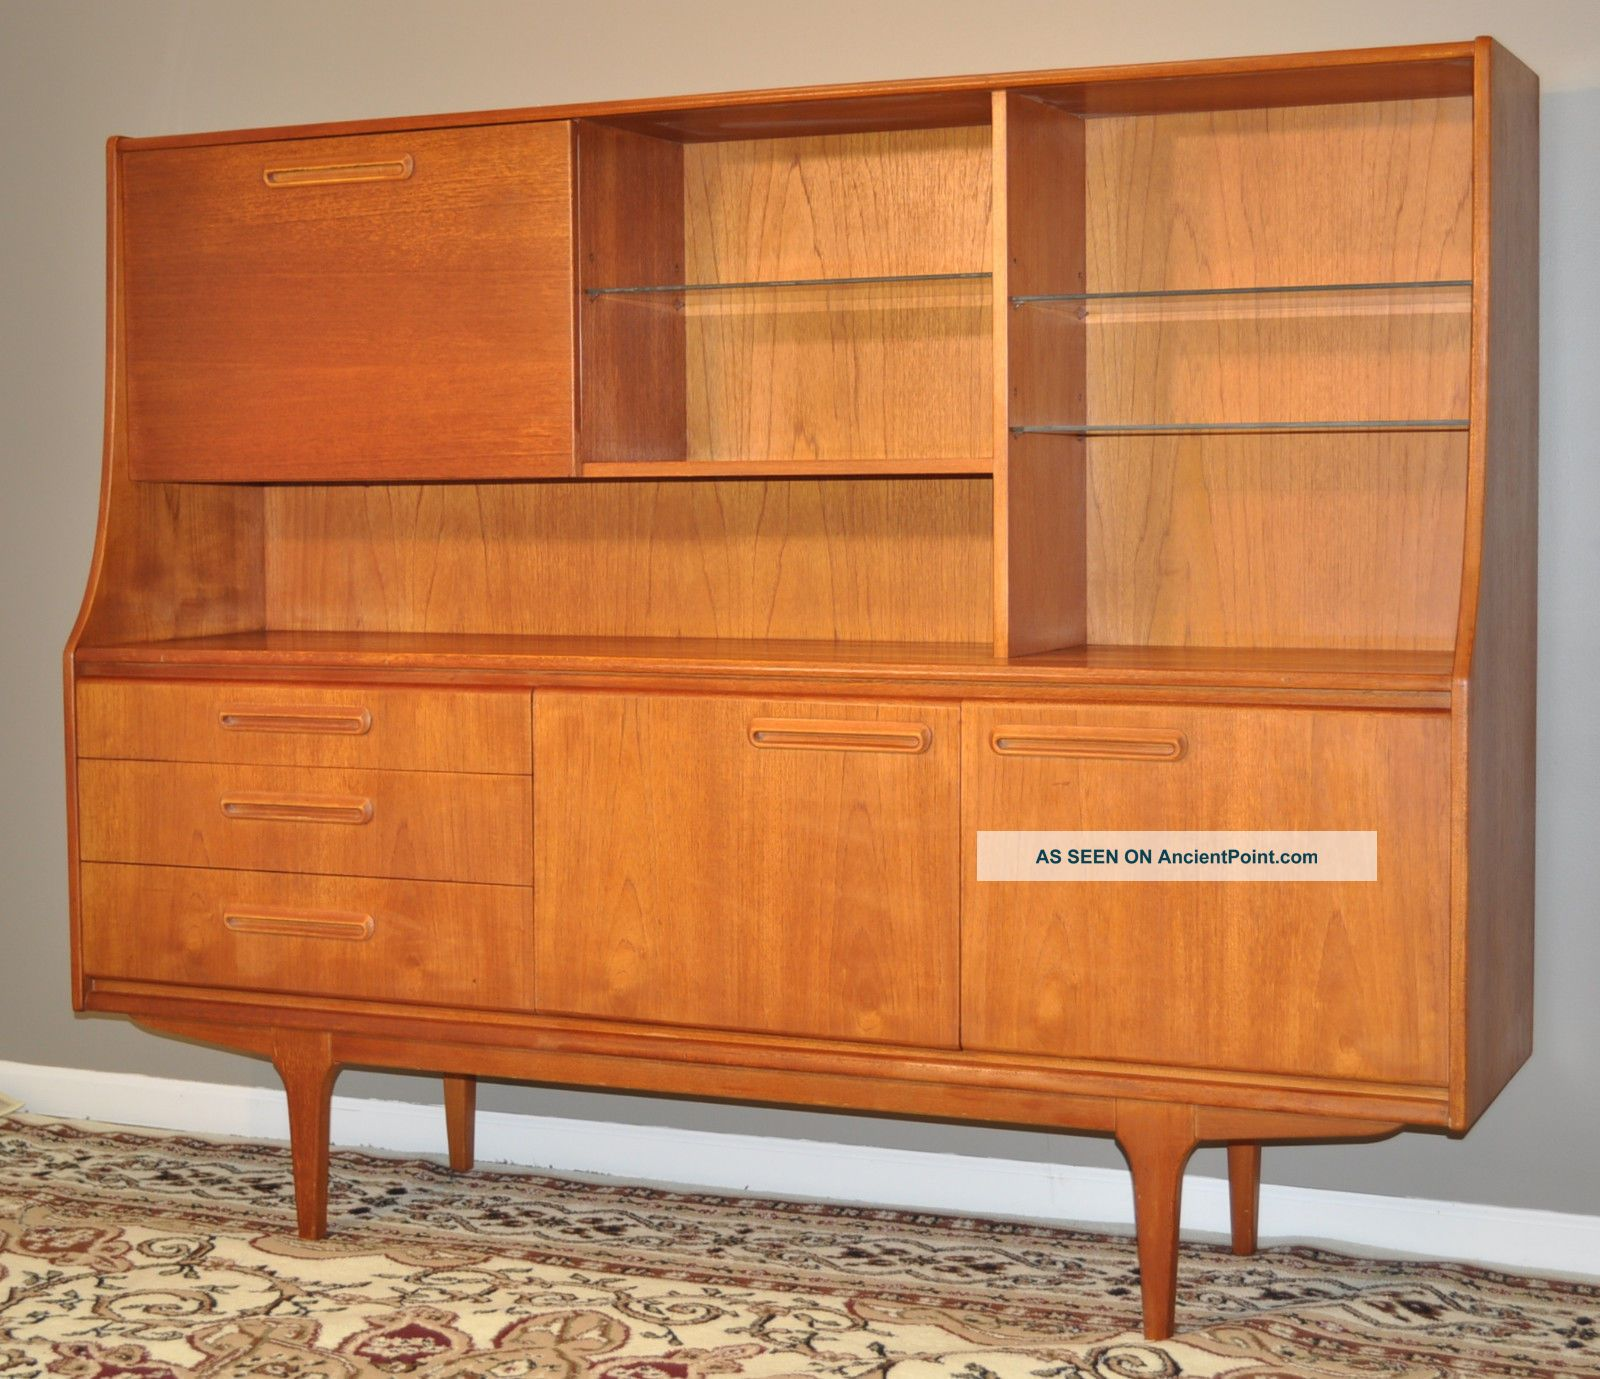 Attractive Large Vintage Retro 1960/70 ' S Teak Credenza Sideboard Buffet Hutch Post-1950 photo